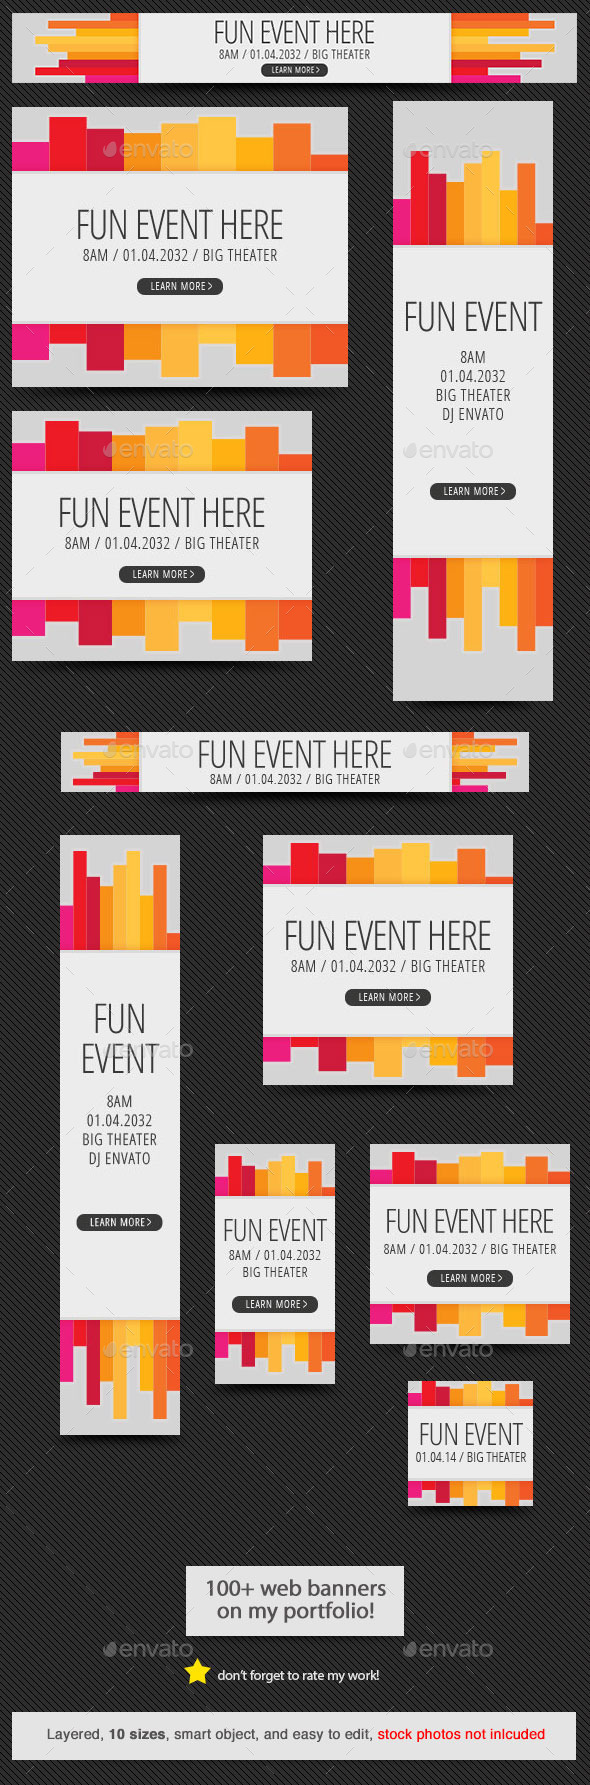 Colorful Event Web Banner